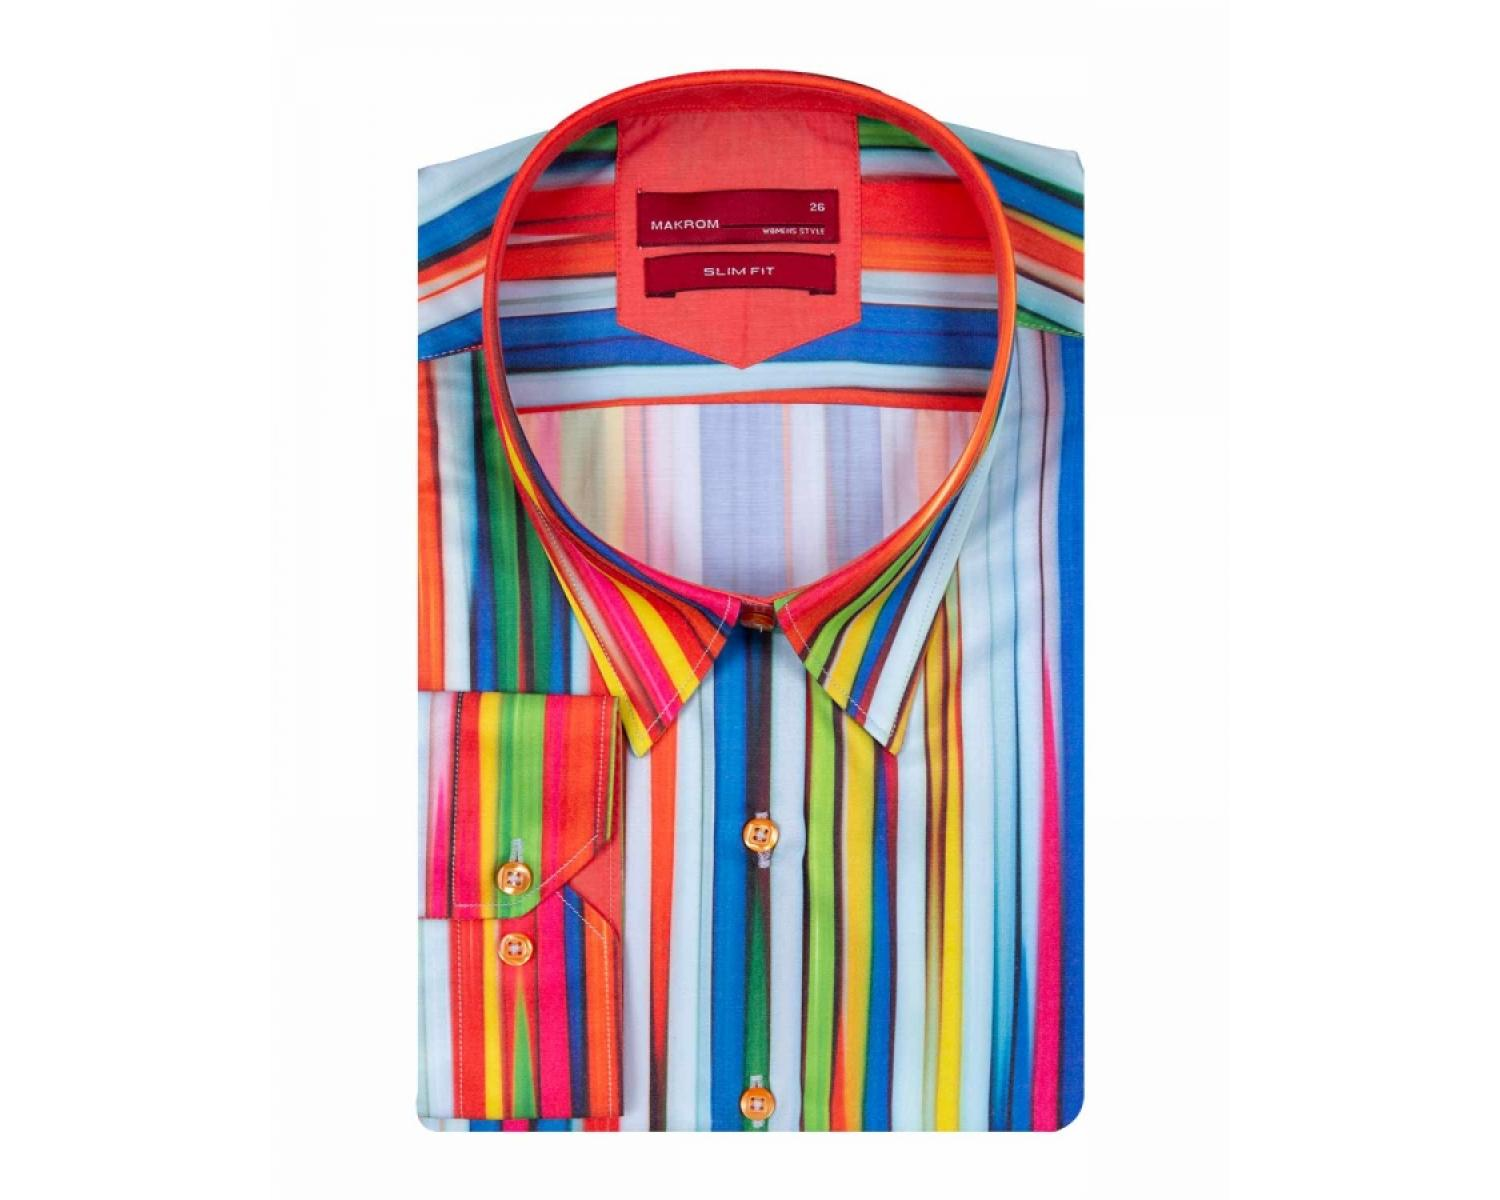 c45015c512 LL 3275 Women's multi color striped shirt - Quality Designed Shirts